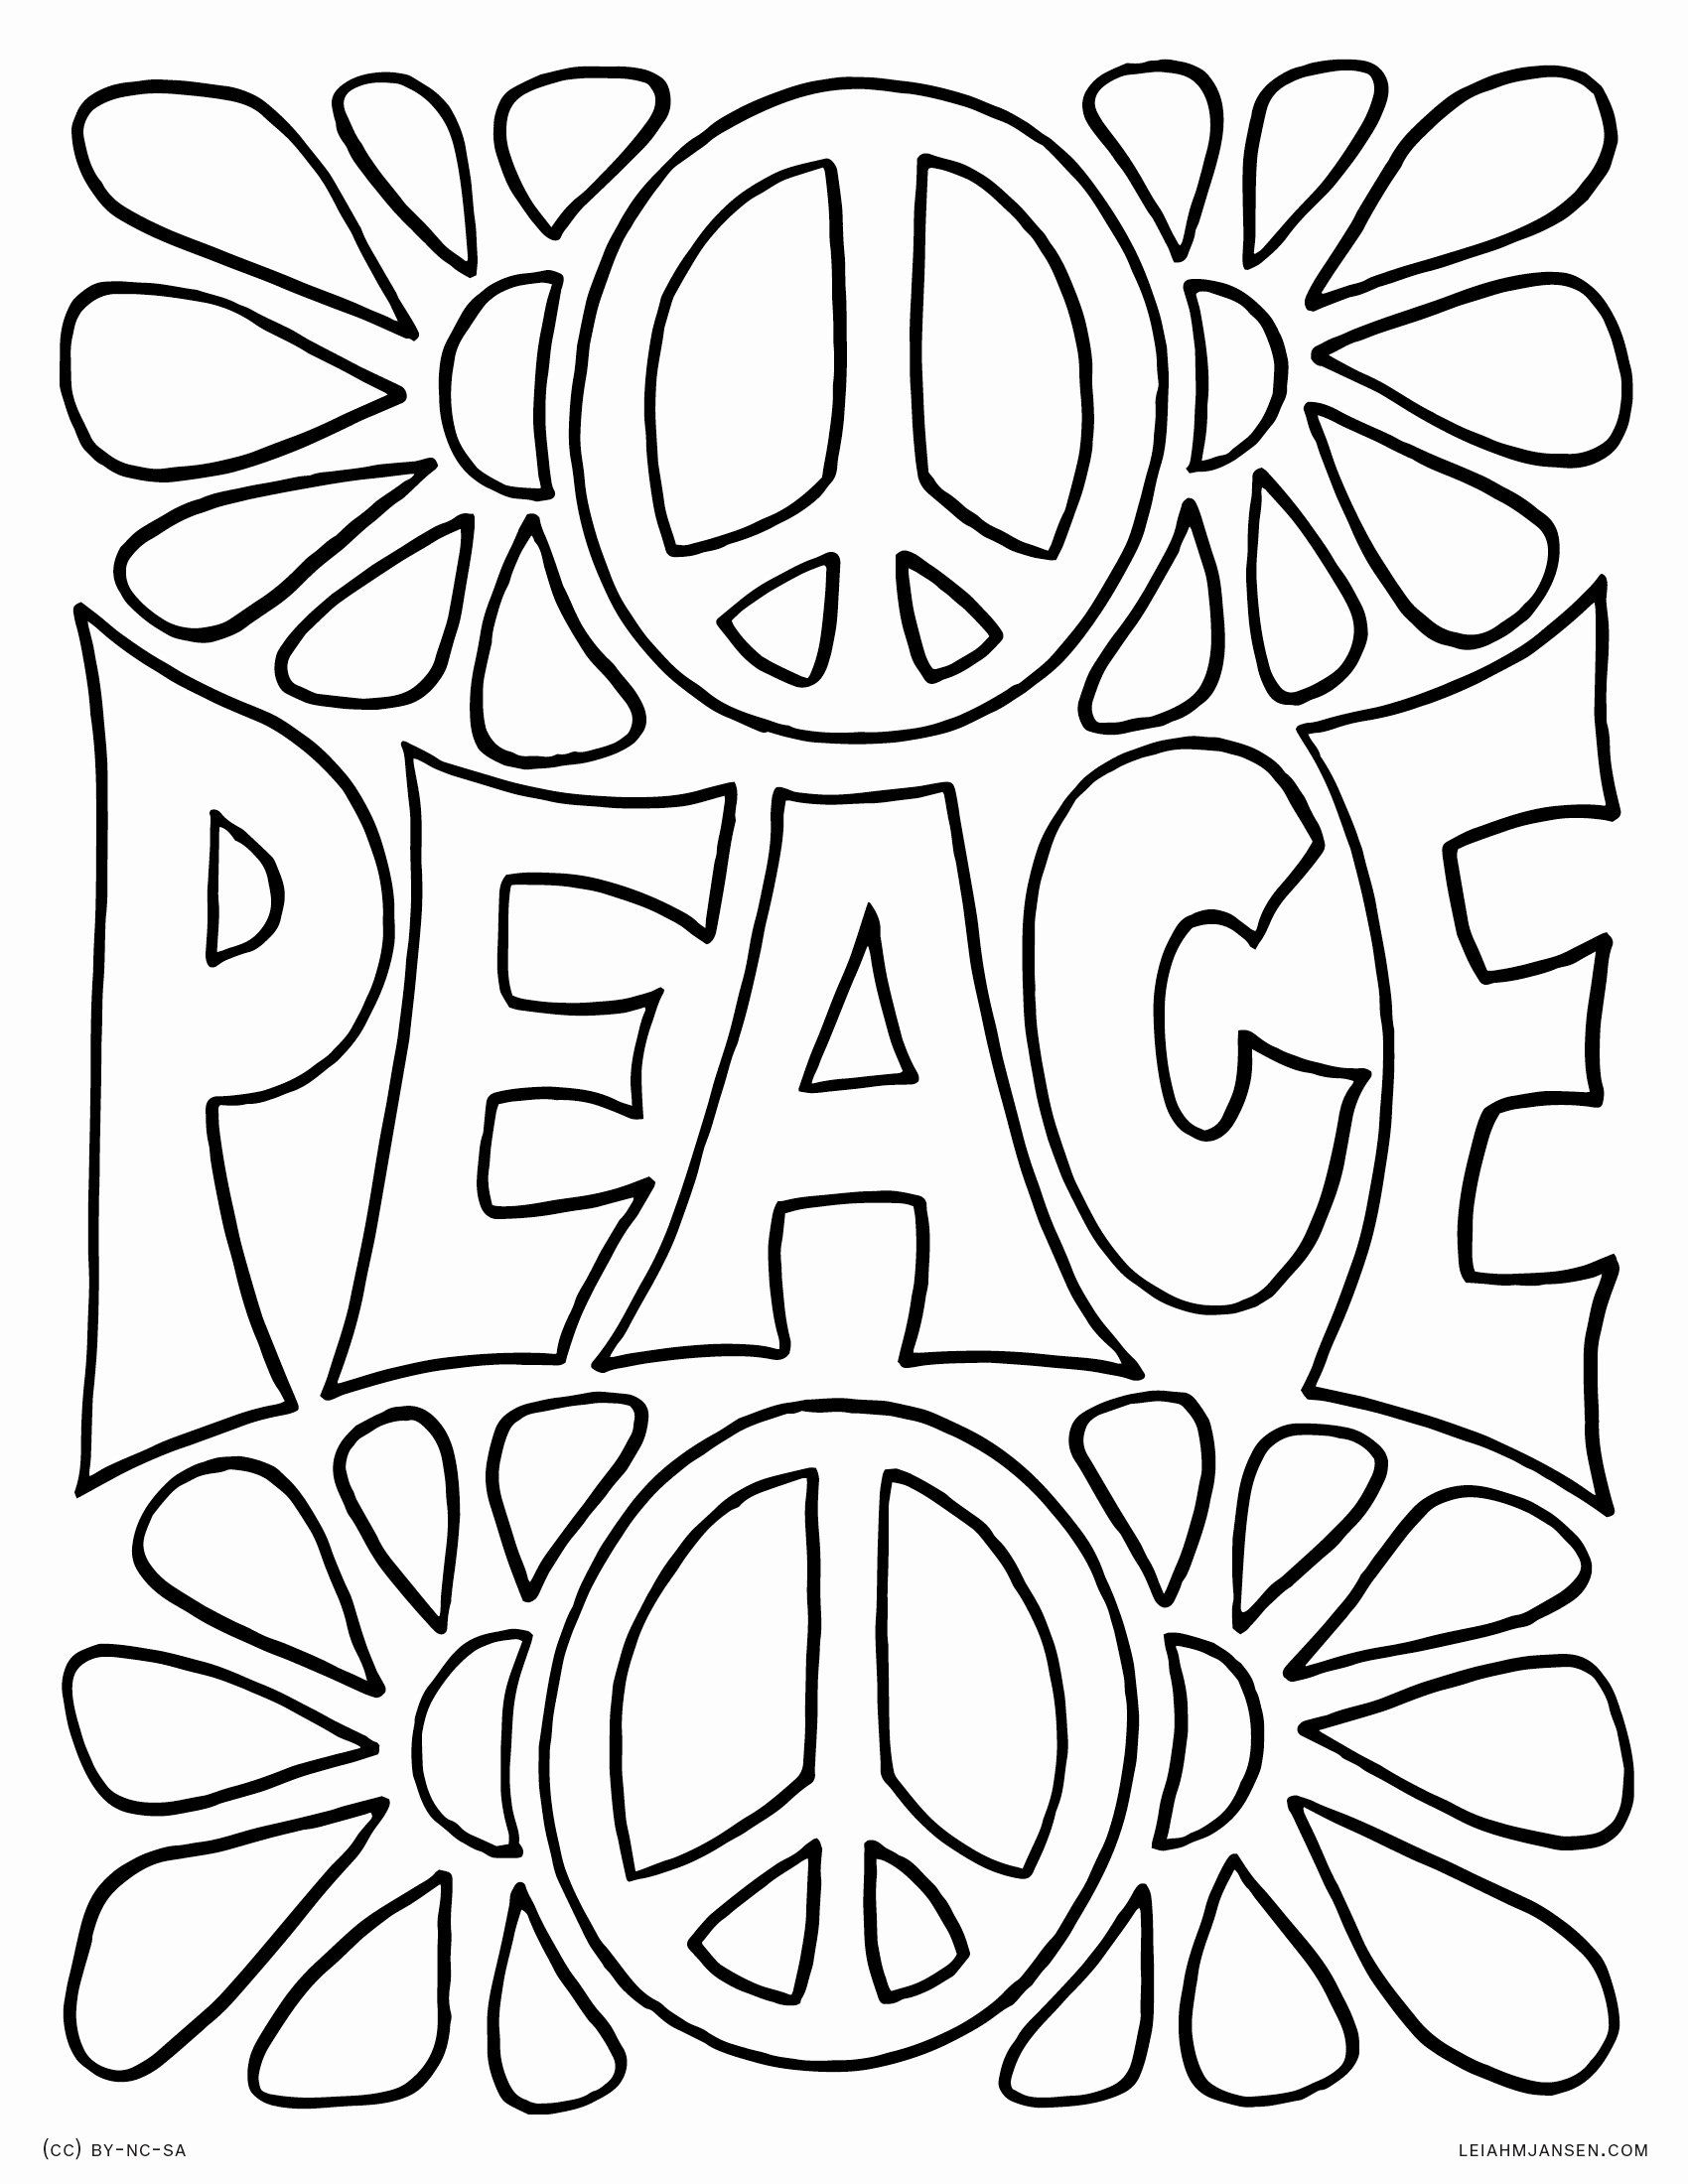 free printable peace sign coloring pages simple and attractive free printable peace sign coloring printable sign pages coloring free peace